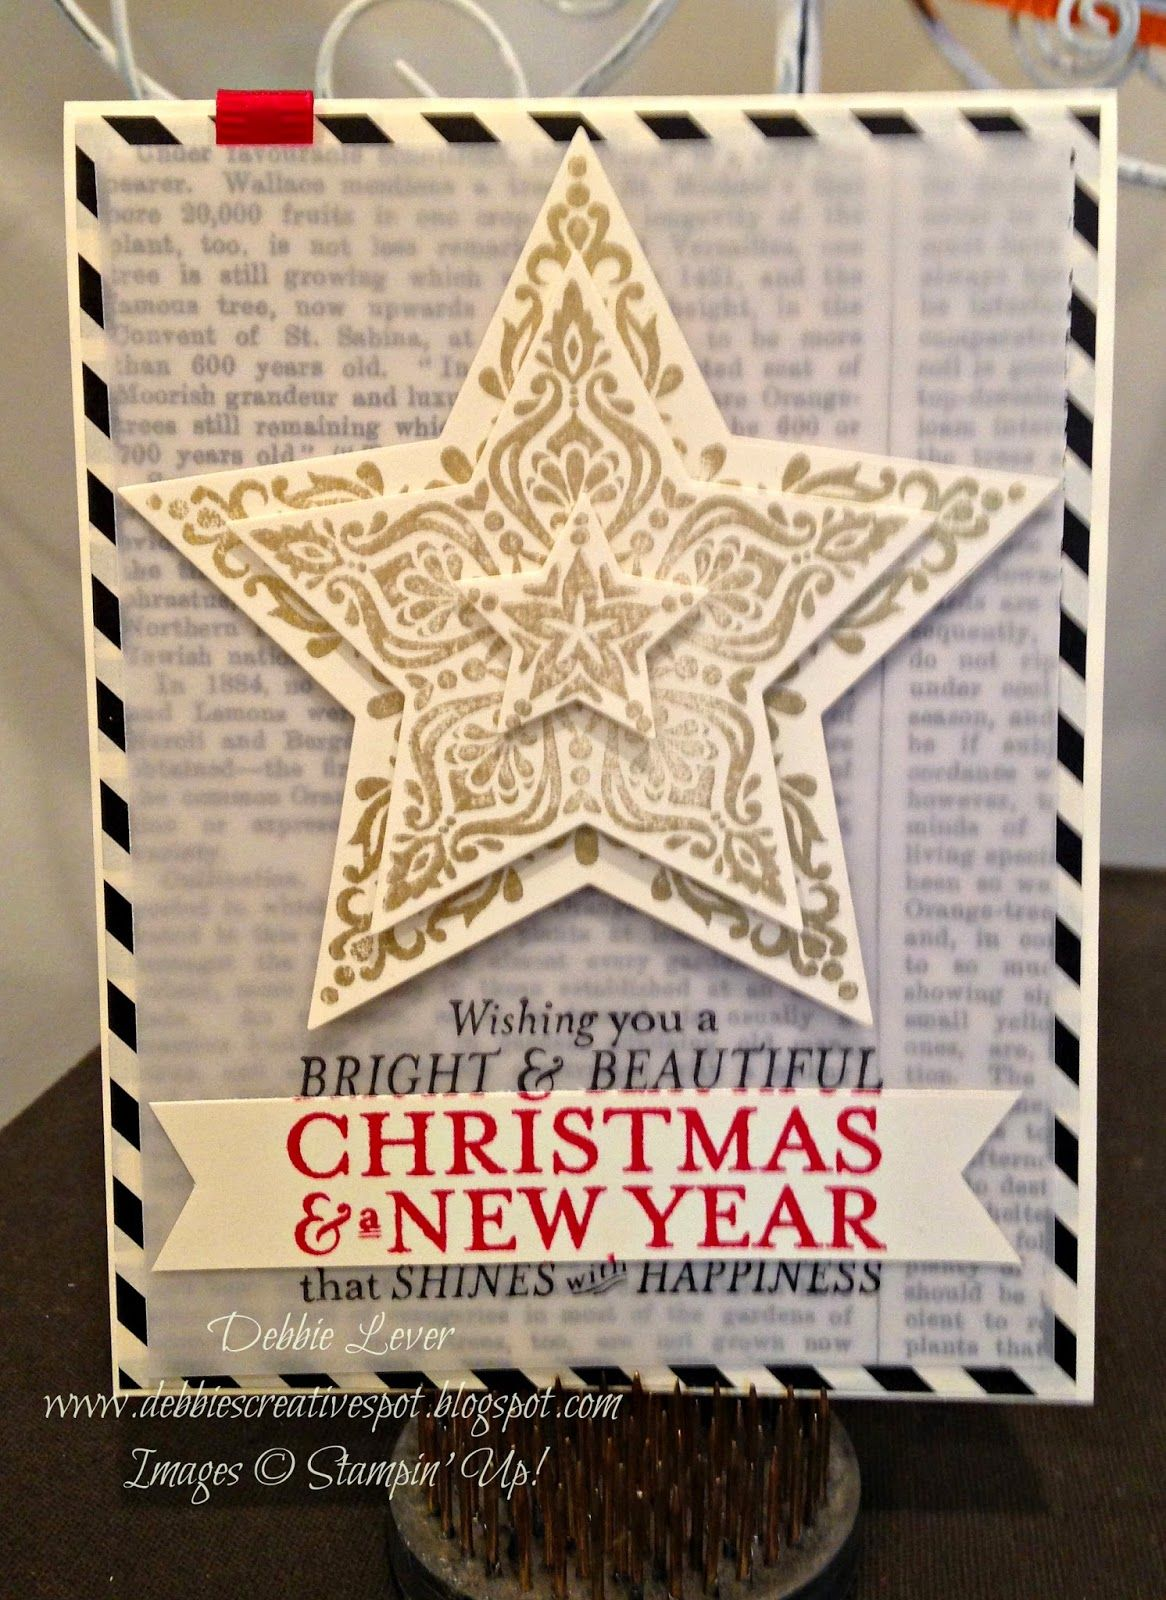 stampin' up holiday catalog with images  hand stamped